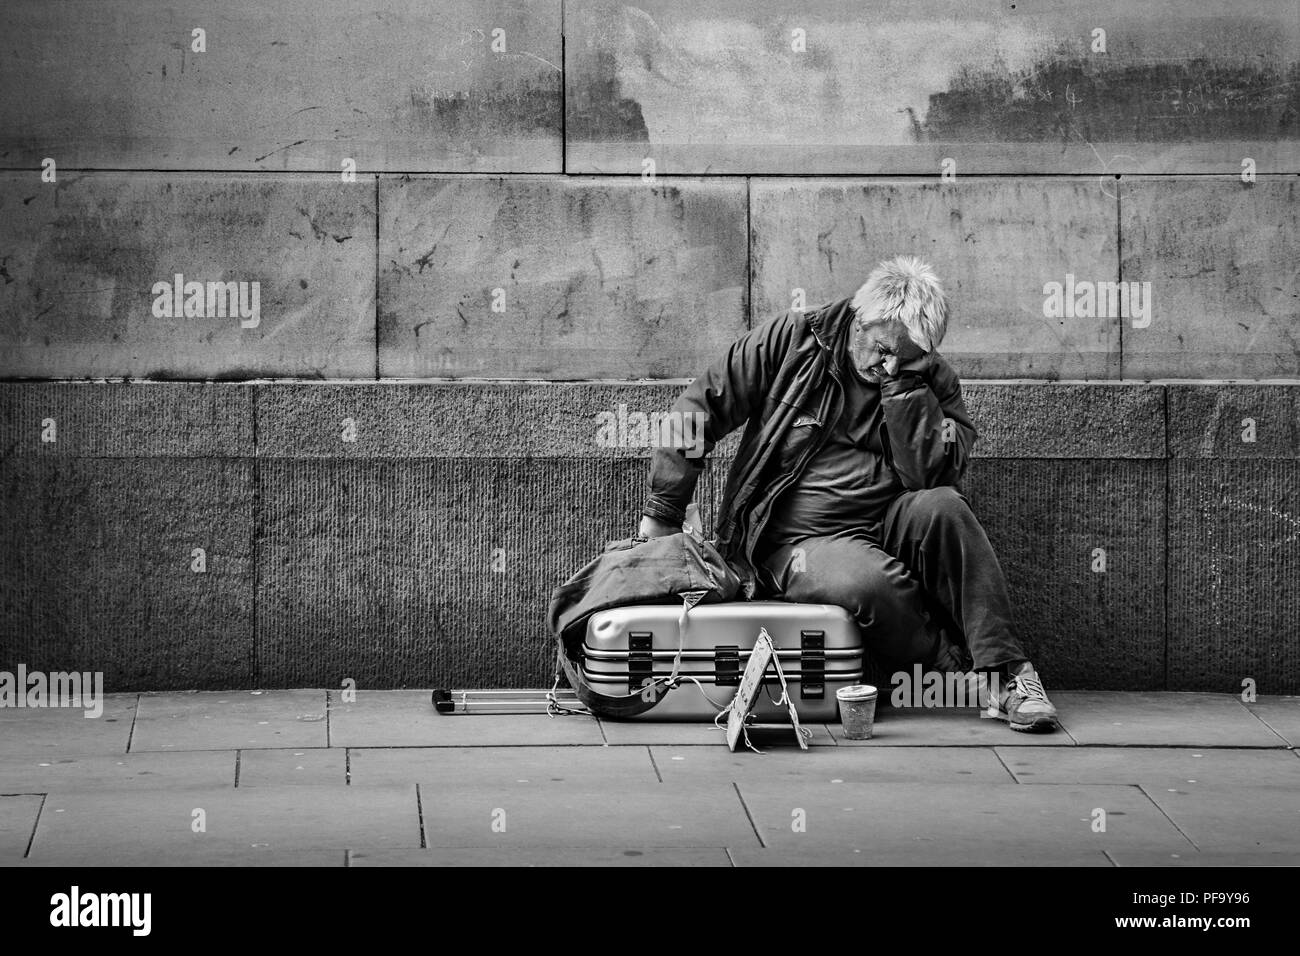 Homeless Man with suitcase asleep on the streets of Manchester City Centre, UK - Stock Image